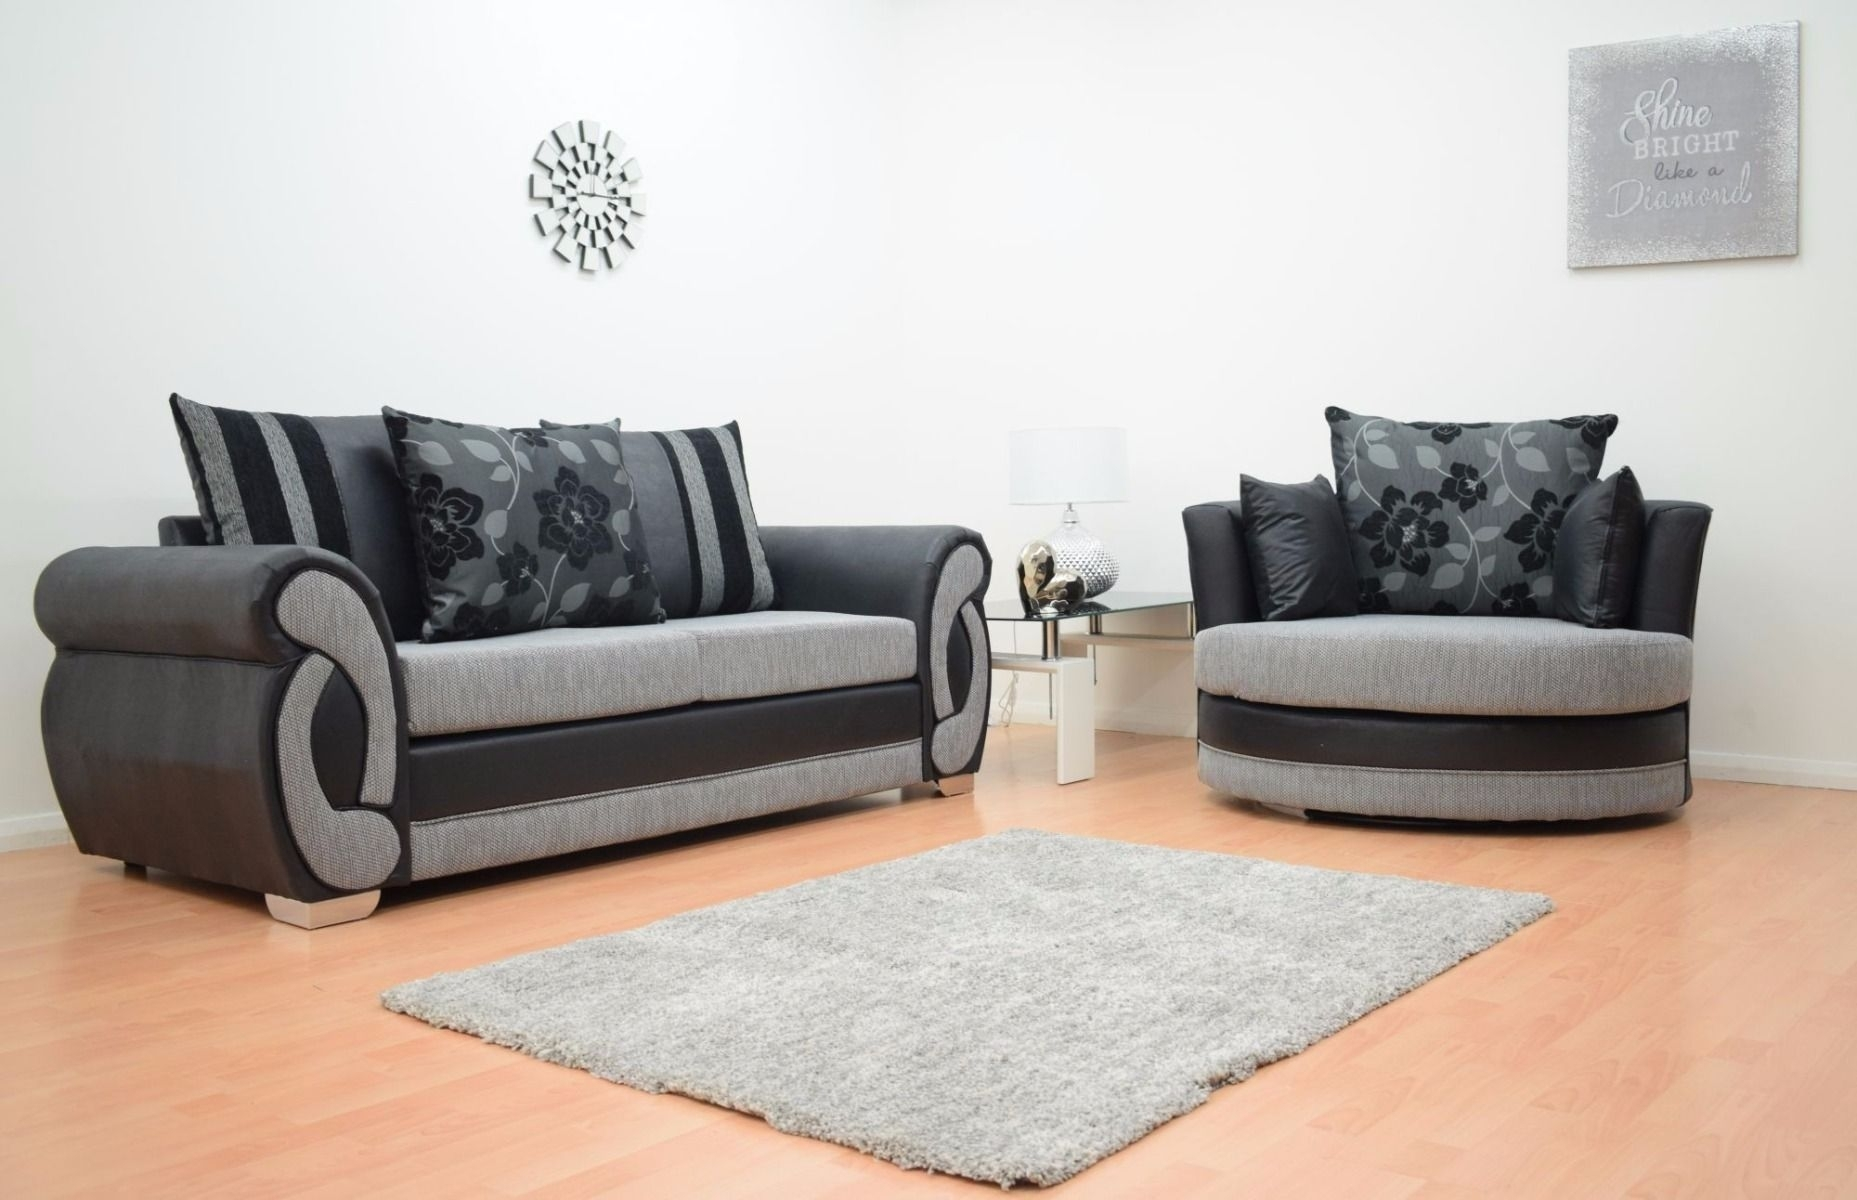 Furnish365 | Chloe 3-Seater And 2-Seater Fabric Sofa Suite - Black regarding 3 Seater Sofas And Cuddle Chairs (Image 3 of 10)